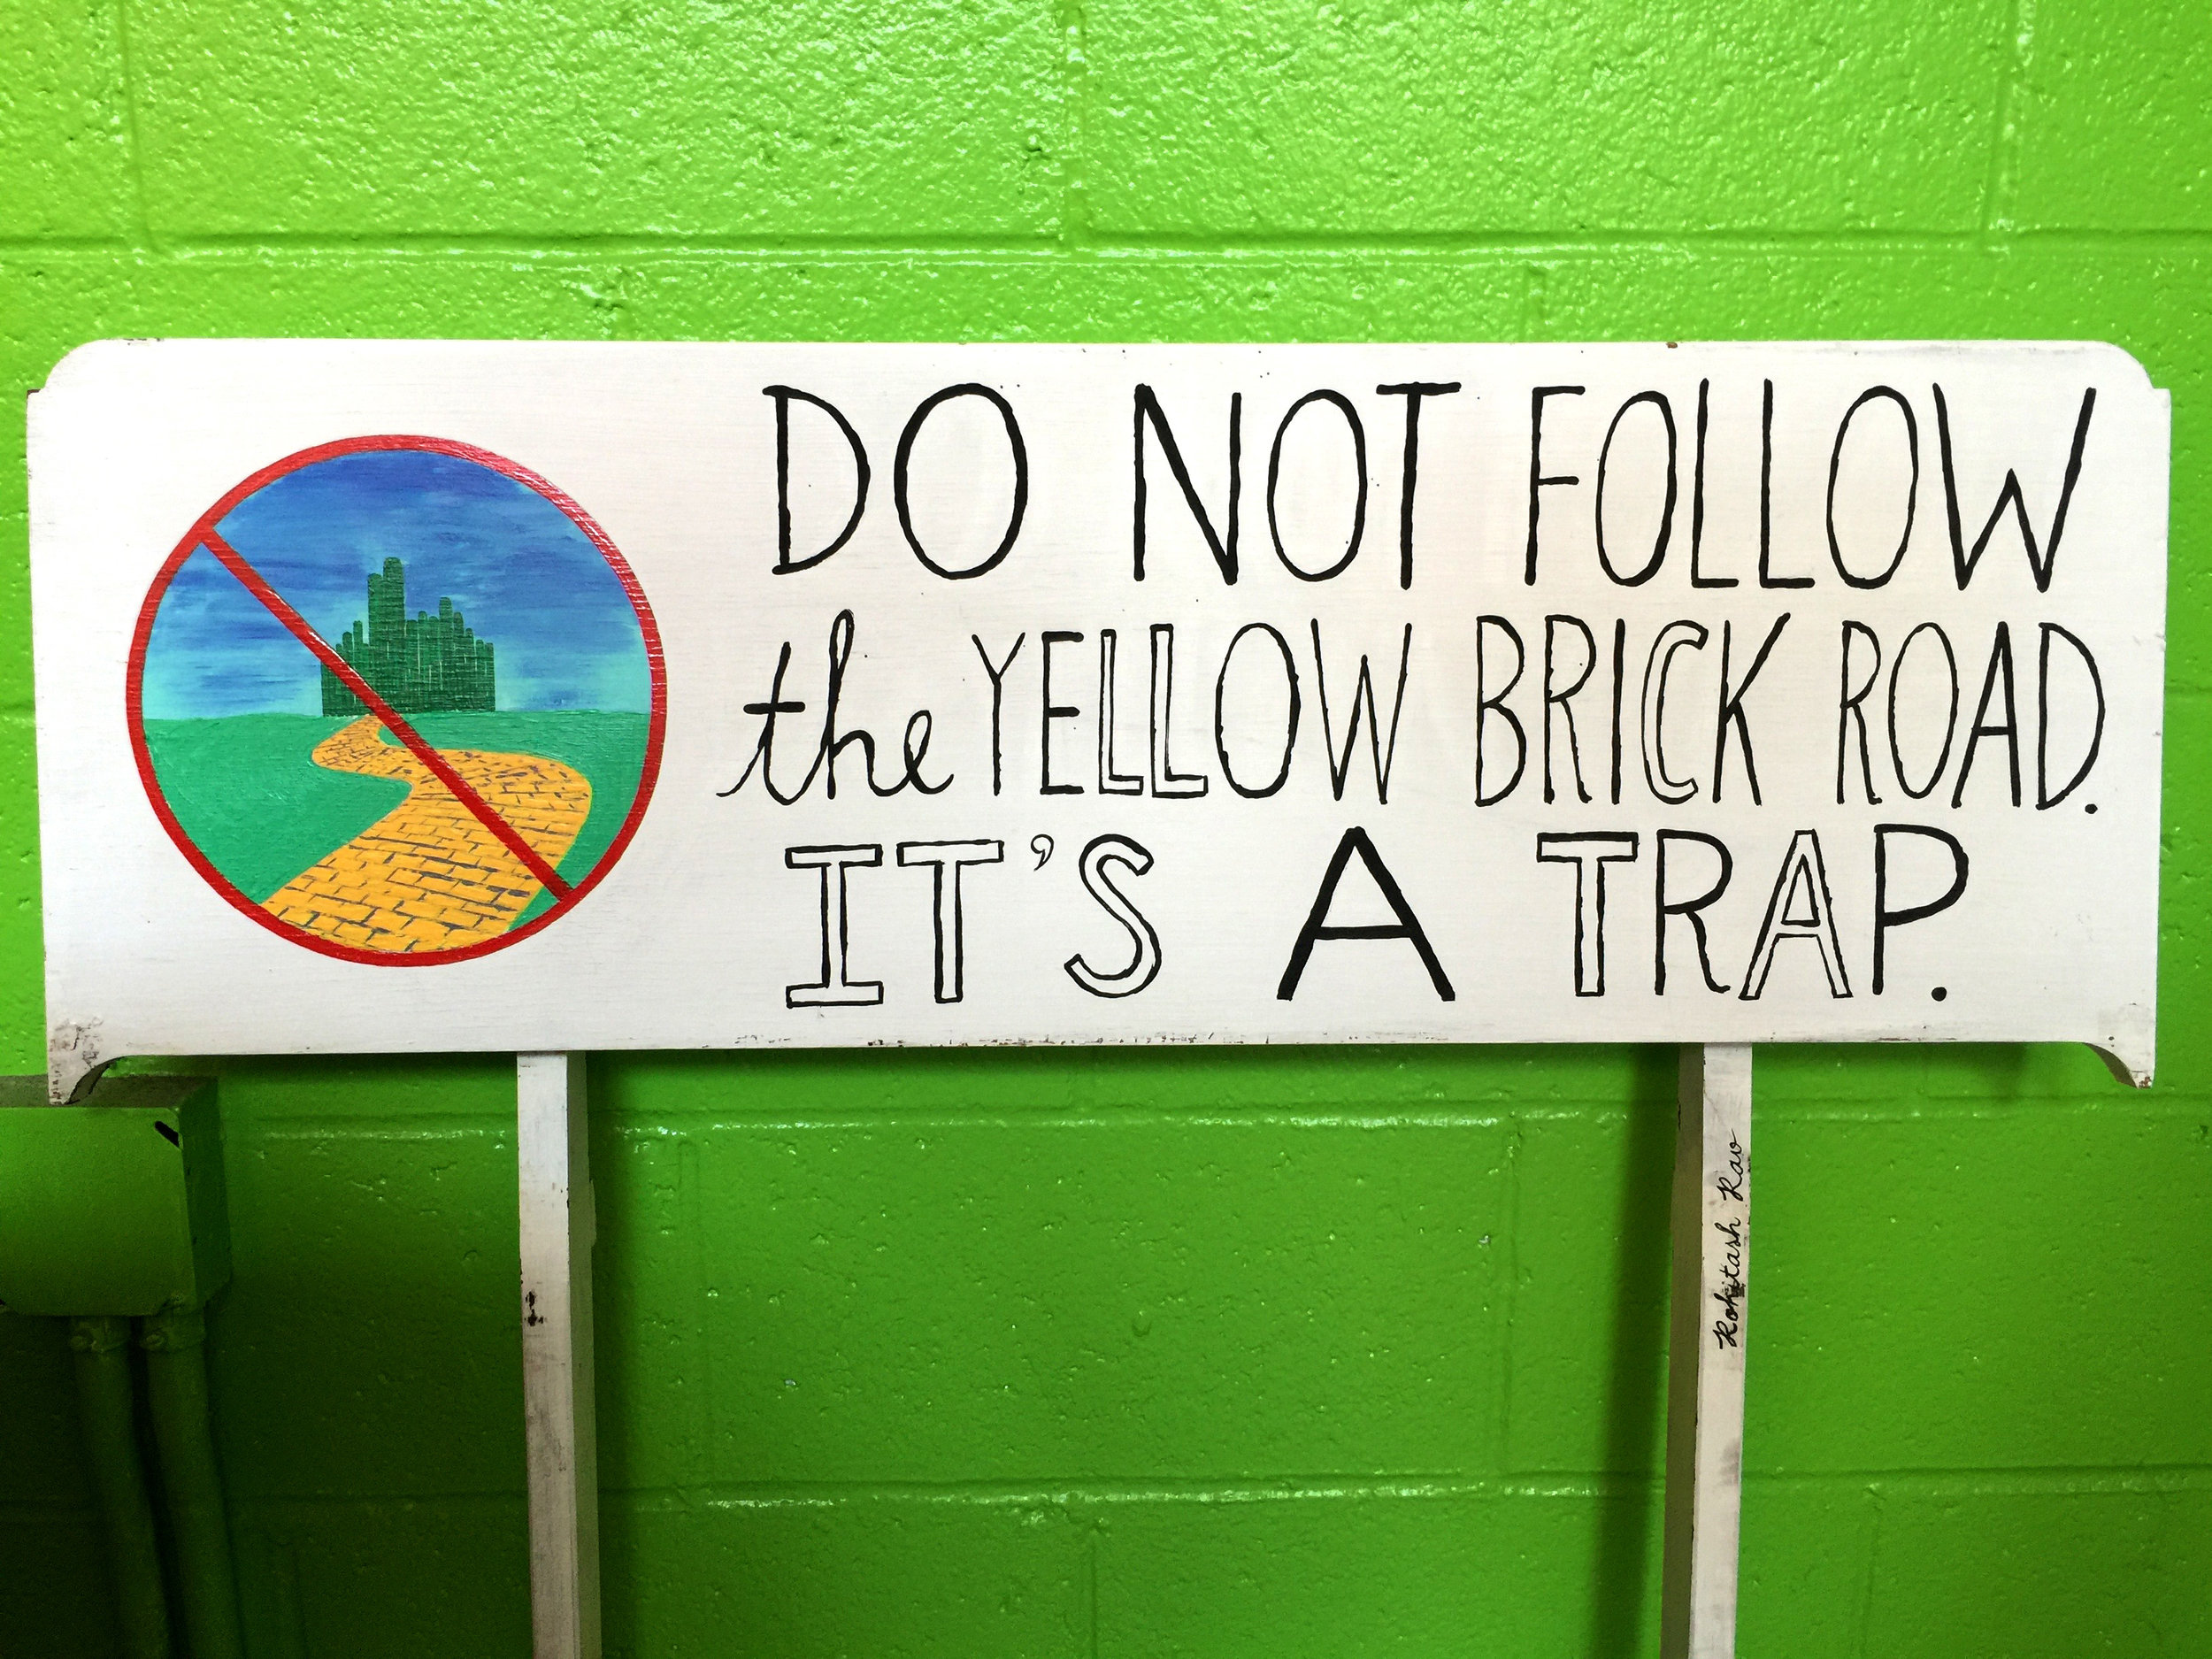 DO NOT FOLLOW THE YELLOW BRICK ROAD